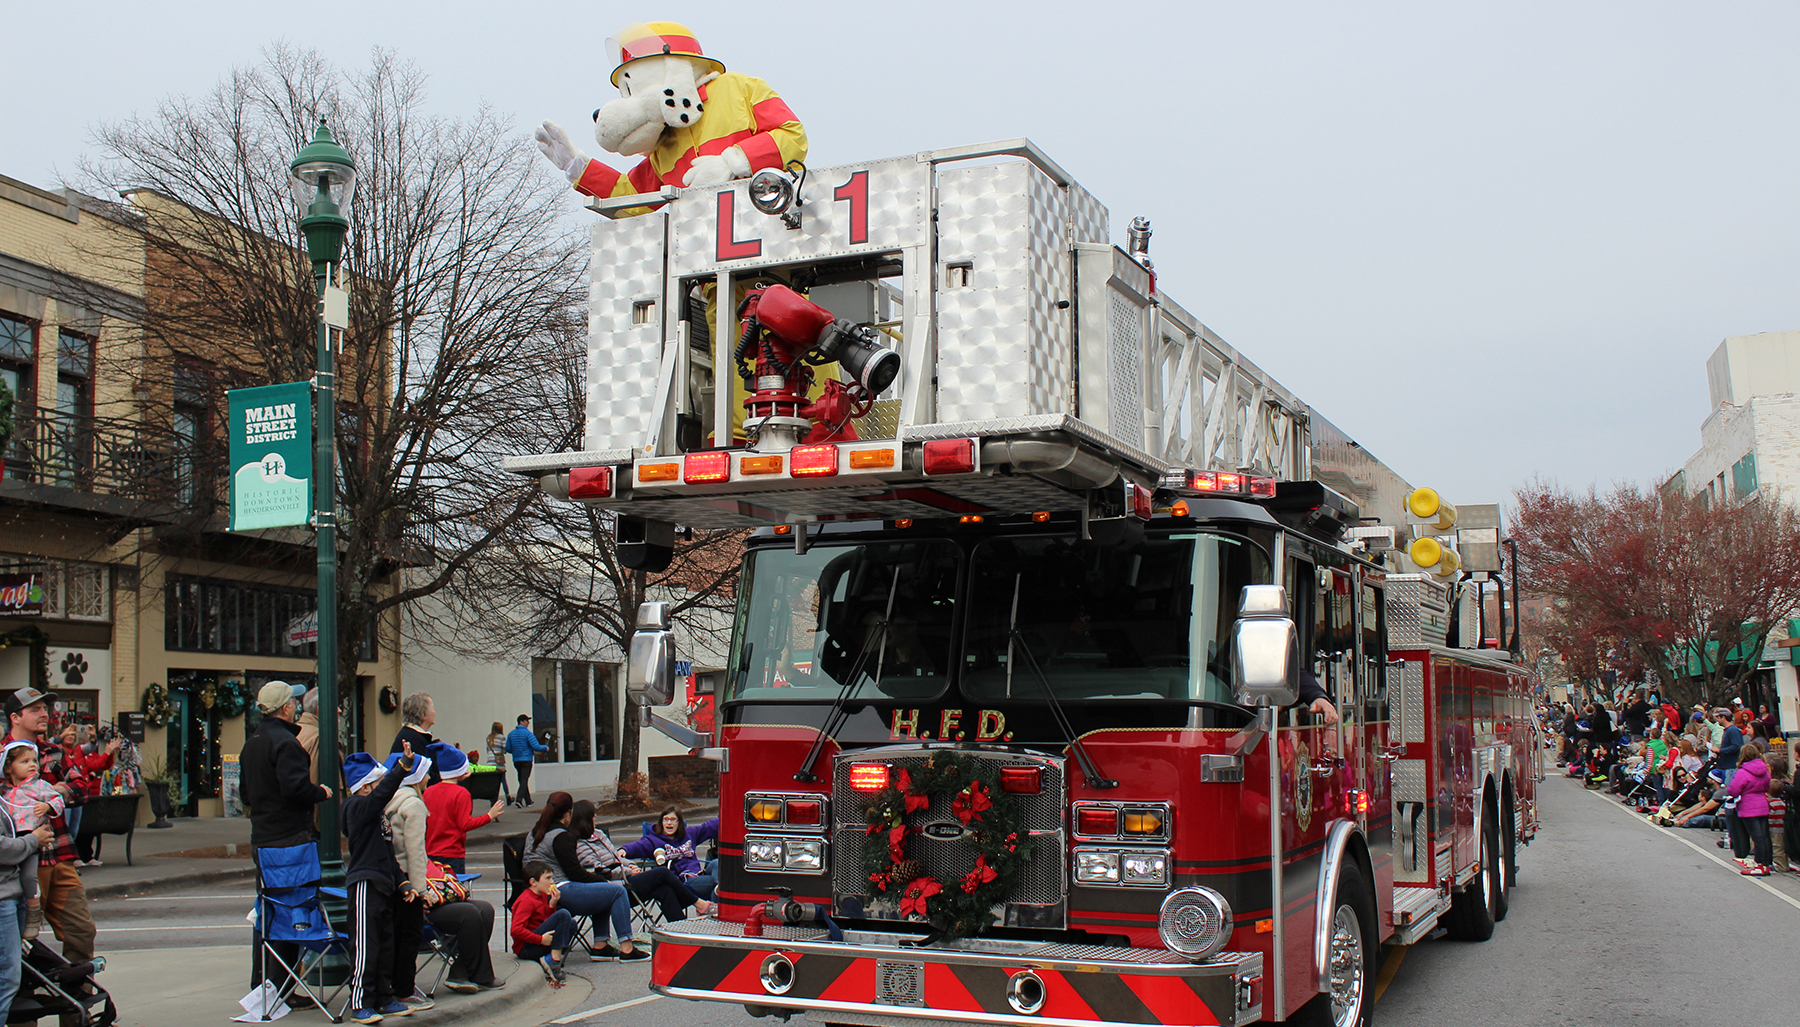 Henderson Nc Christmas Parade 2019 Christmas Parade | Visitors Information Center | Hendersonville, NC